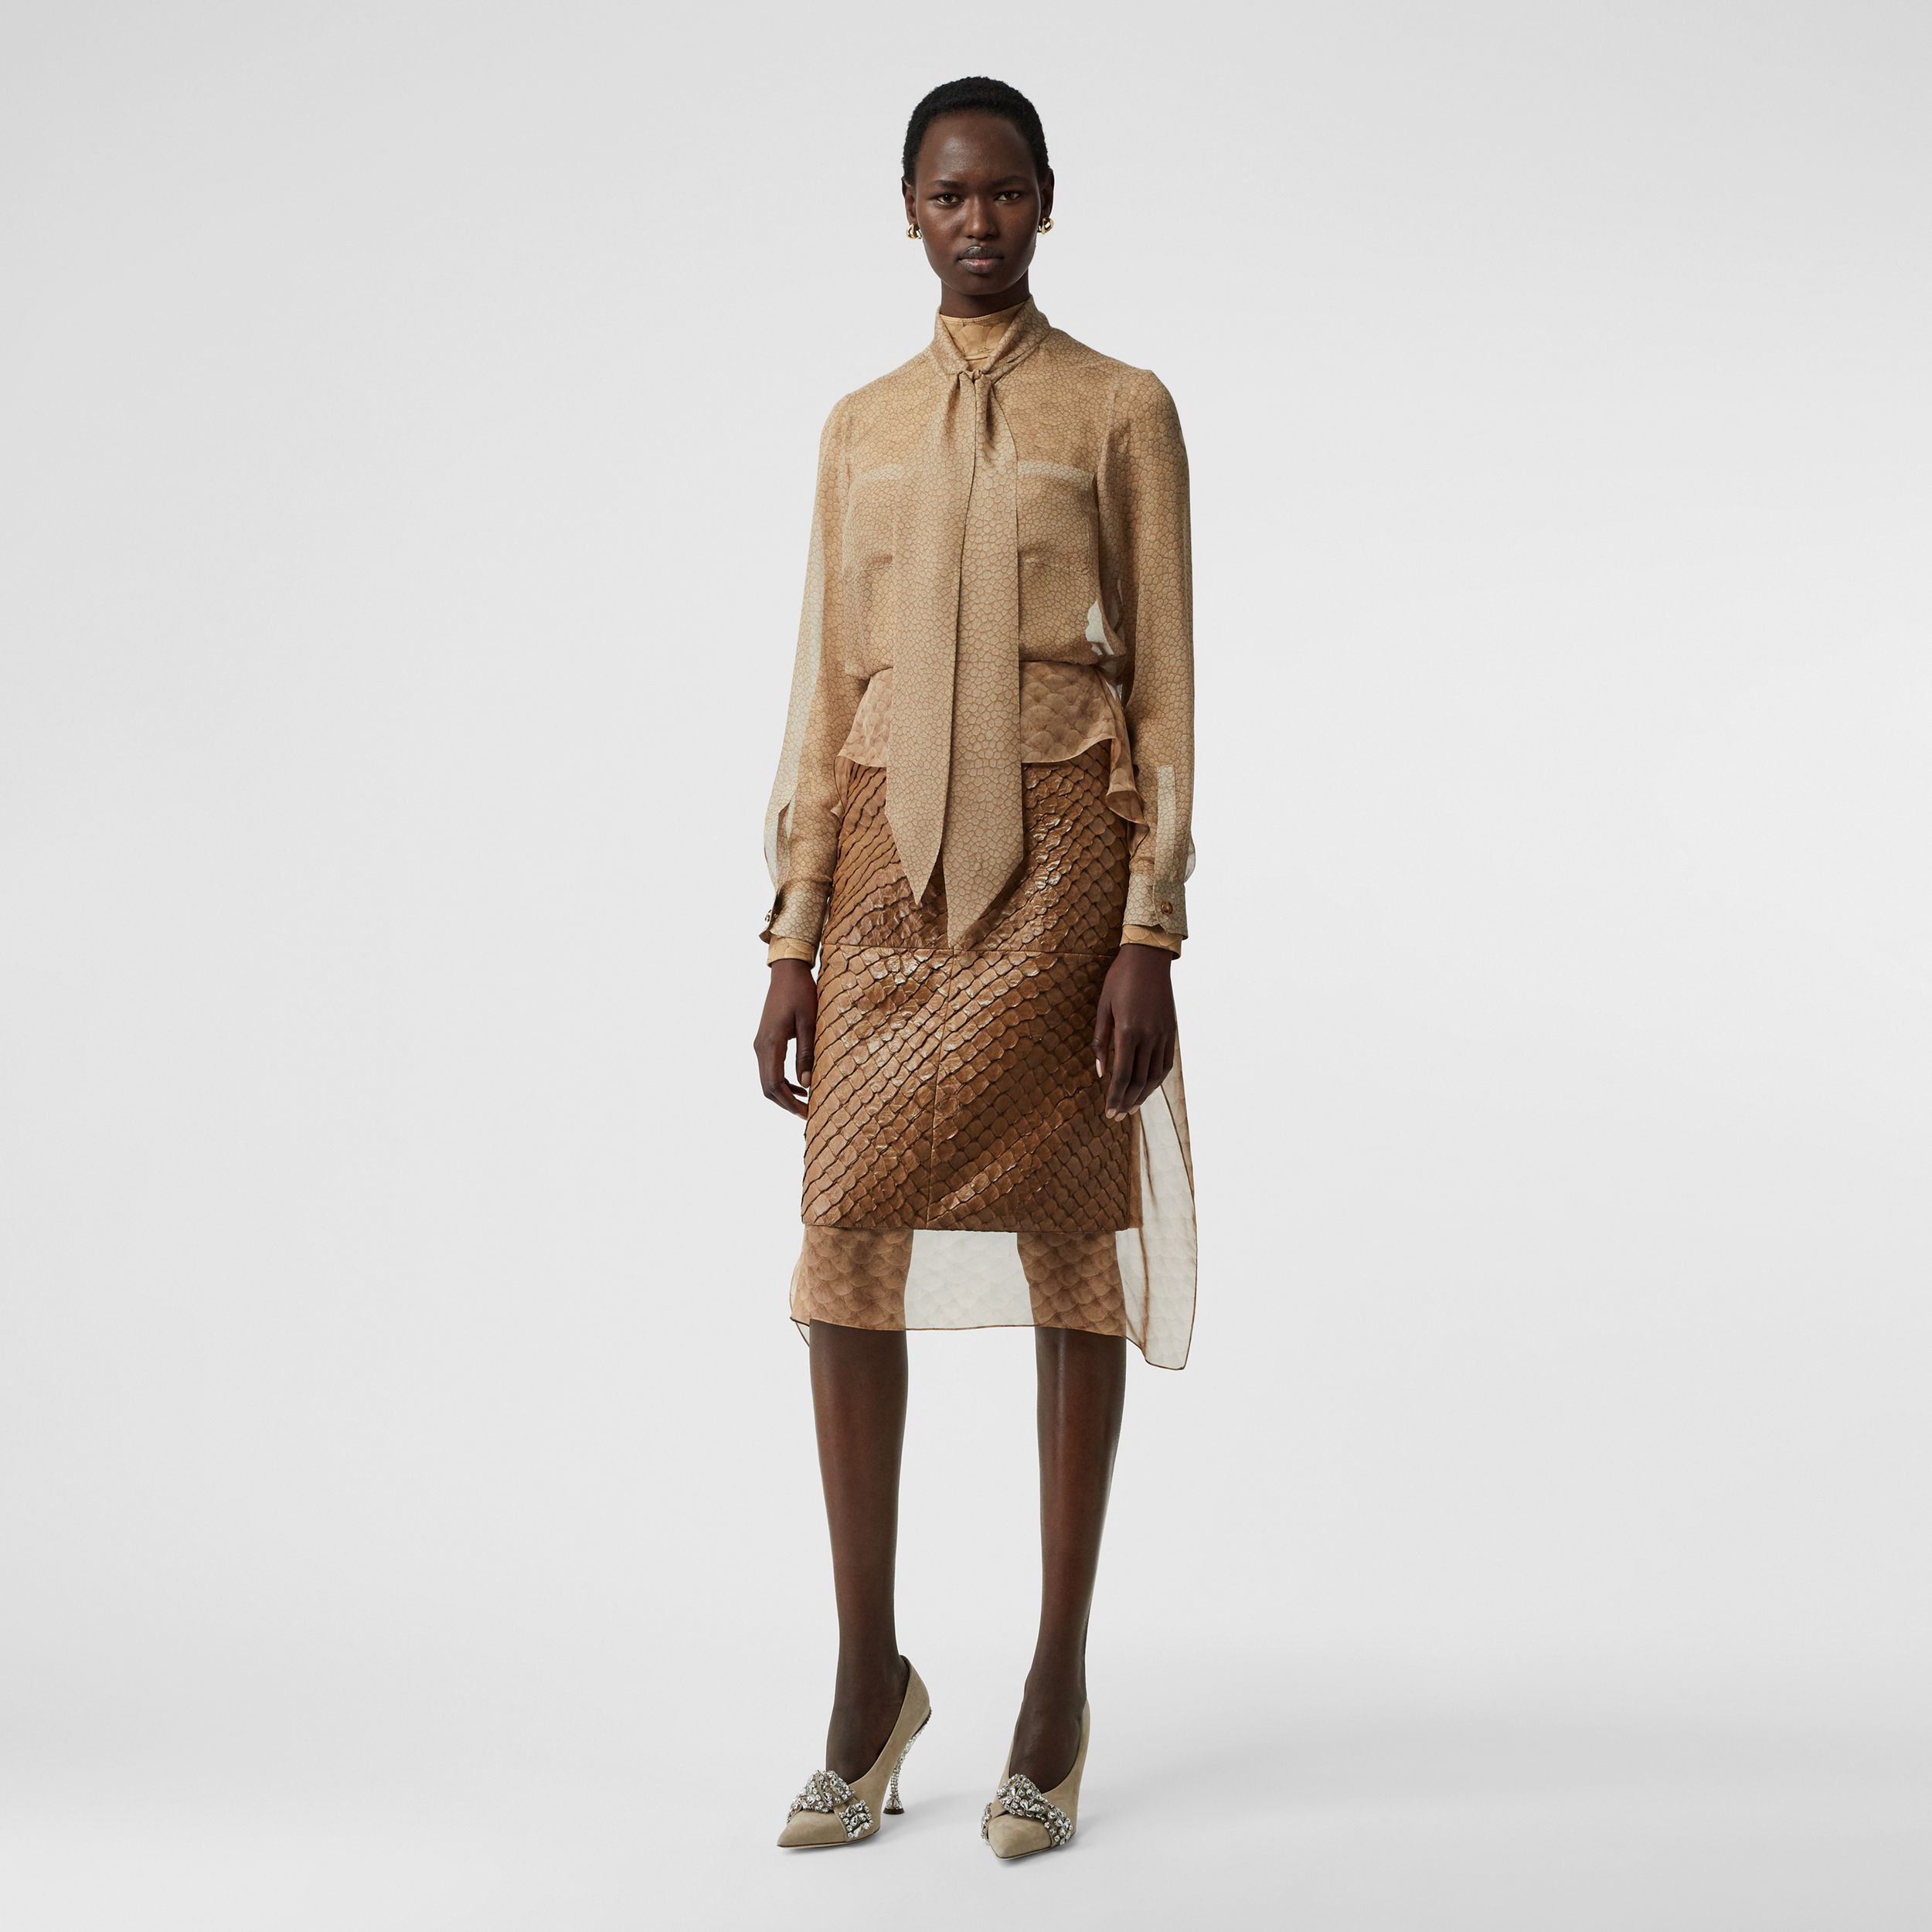 Fish-scale Print Silk Oversized Pussy-bow Blouse in Light Sand - Women | Burberry - 1